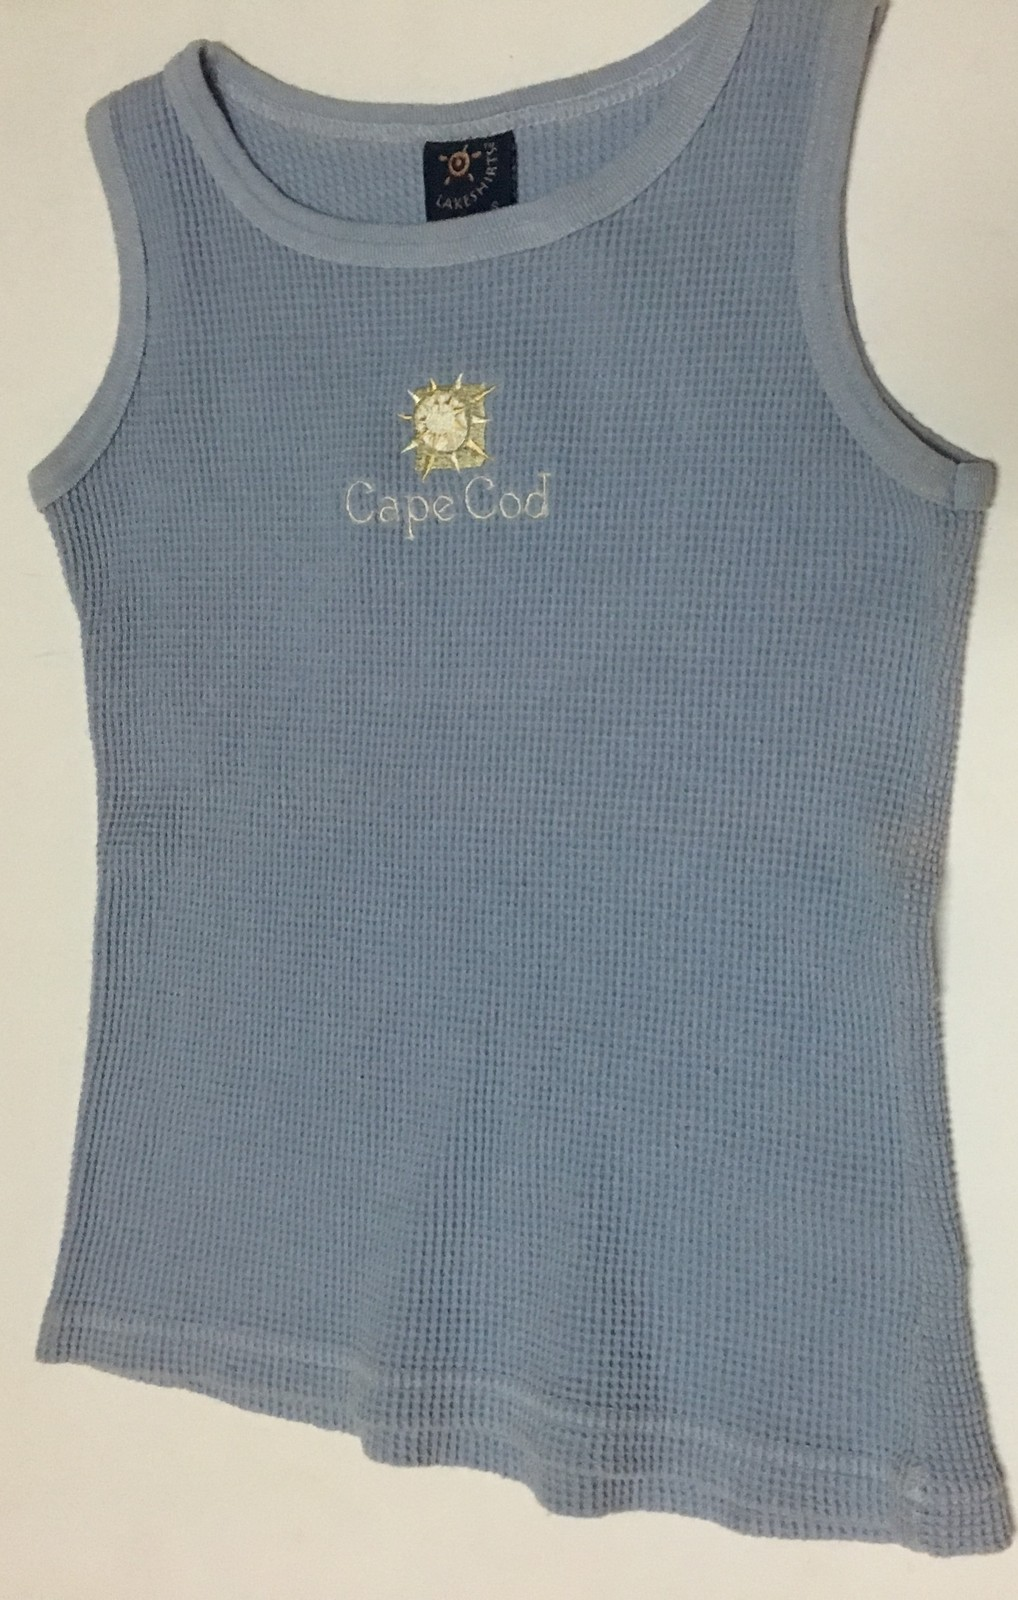 Lakeshirts Cape Cod Tank Top Youth Sz S Blue Made in USA